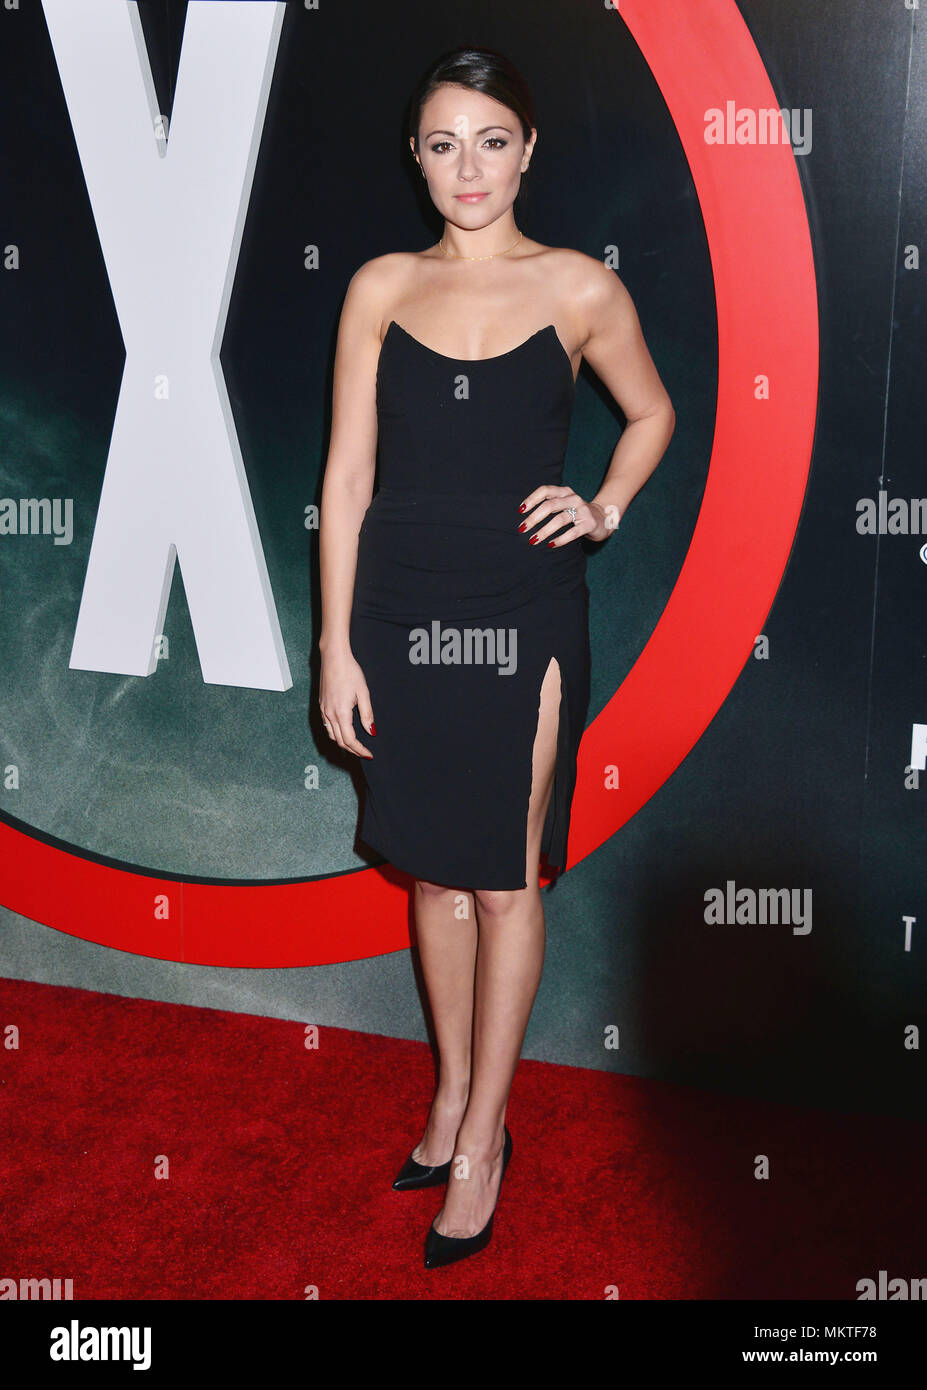 Italia Ricci 056  at The X-Files Premiere at California Science Center in Los Angeles, CA  January 12, 2016.-------- Italia Ricci 056  --------- Event in Hollywood Life - California,  Red Carpet Event, Vertical, USA, Film Industry, Celebrities,  Photography, Bestof, Arts Culture and Entertainment, Topix Celebrities fashion /  from the Red Carpet-2016, one person, Vertical, Best of, Hollywood Life, Event in Hollywood Life - California,  Red Carpet and backstage, USA, Film Industry, Celebrities,  movie celebrities, TV celebrities, Music celebrities, Photography, Bestof, Arts Culture and Entertai - Stock Image